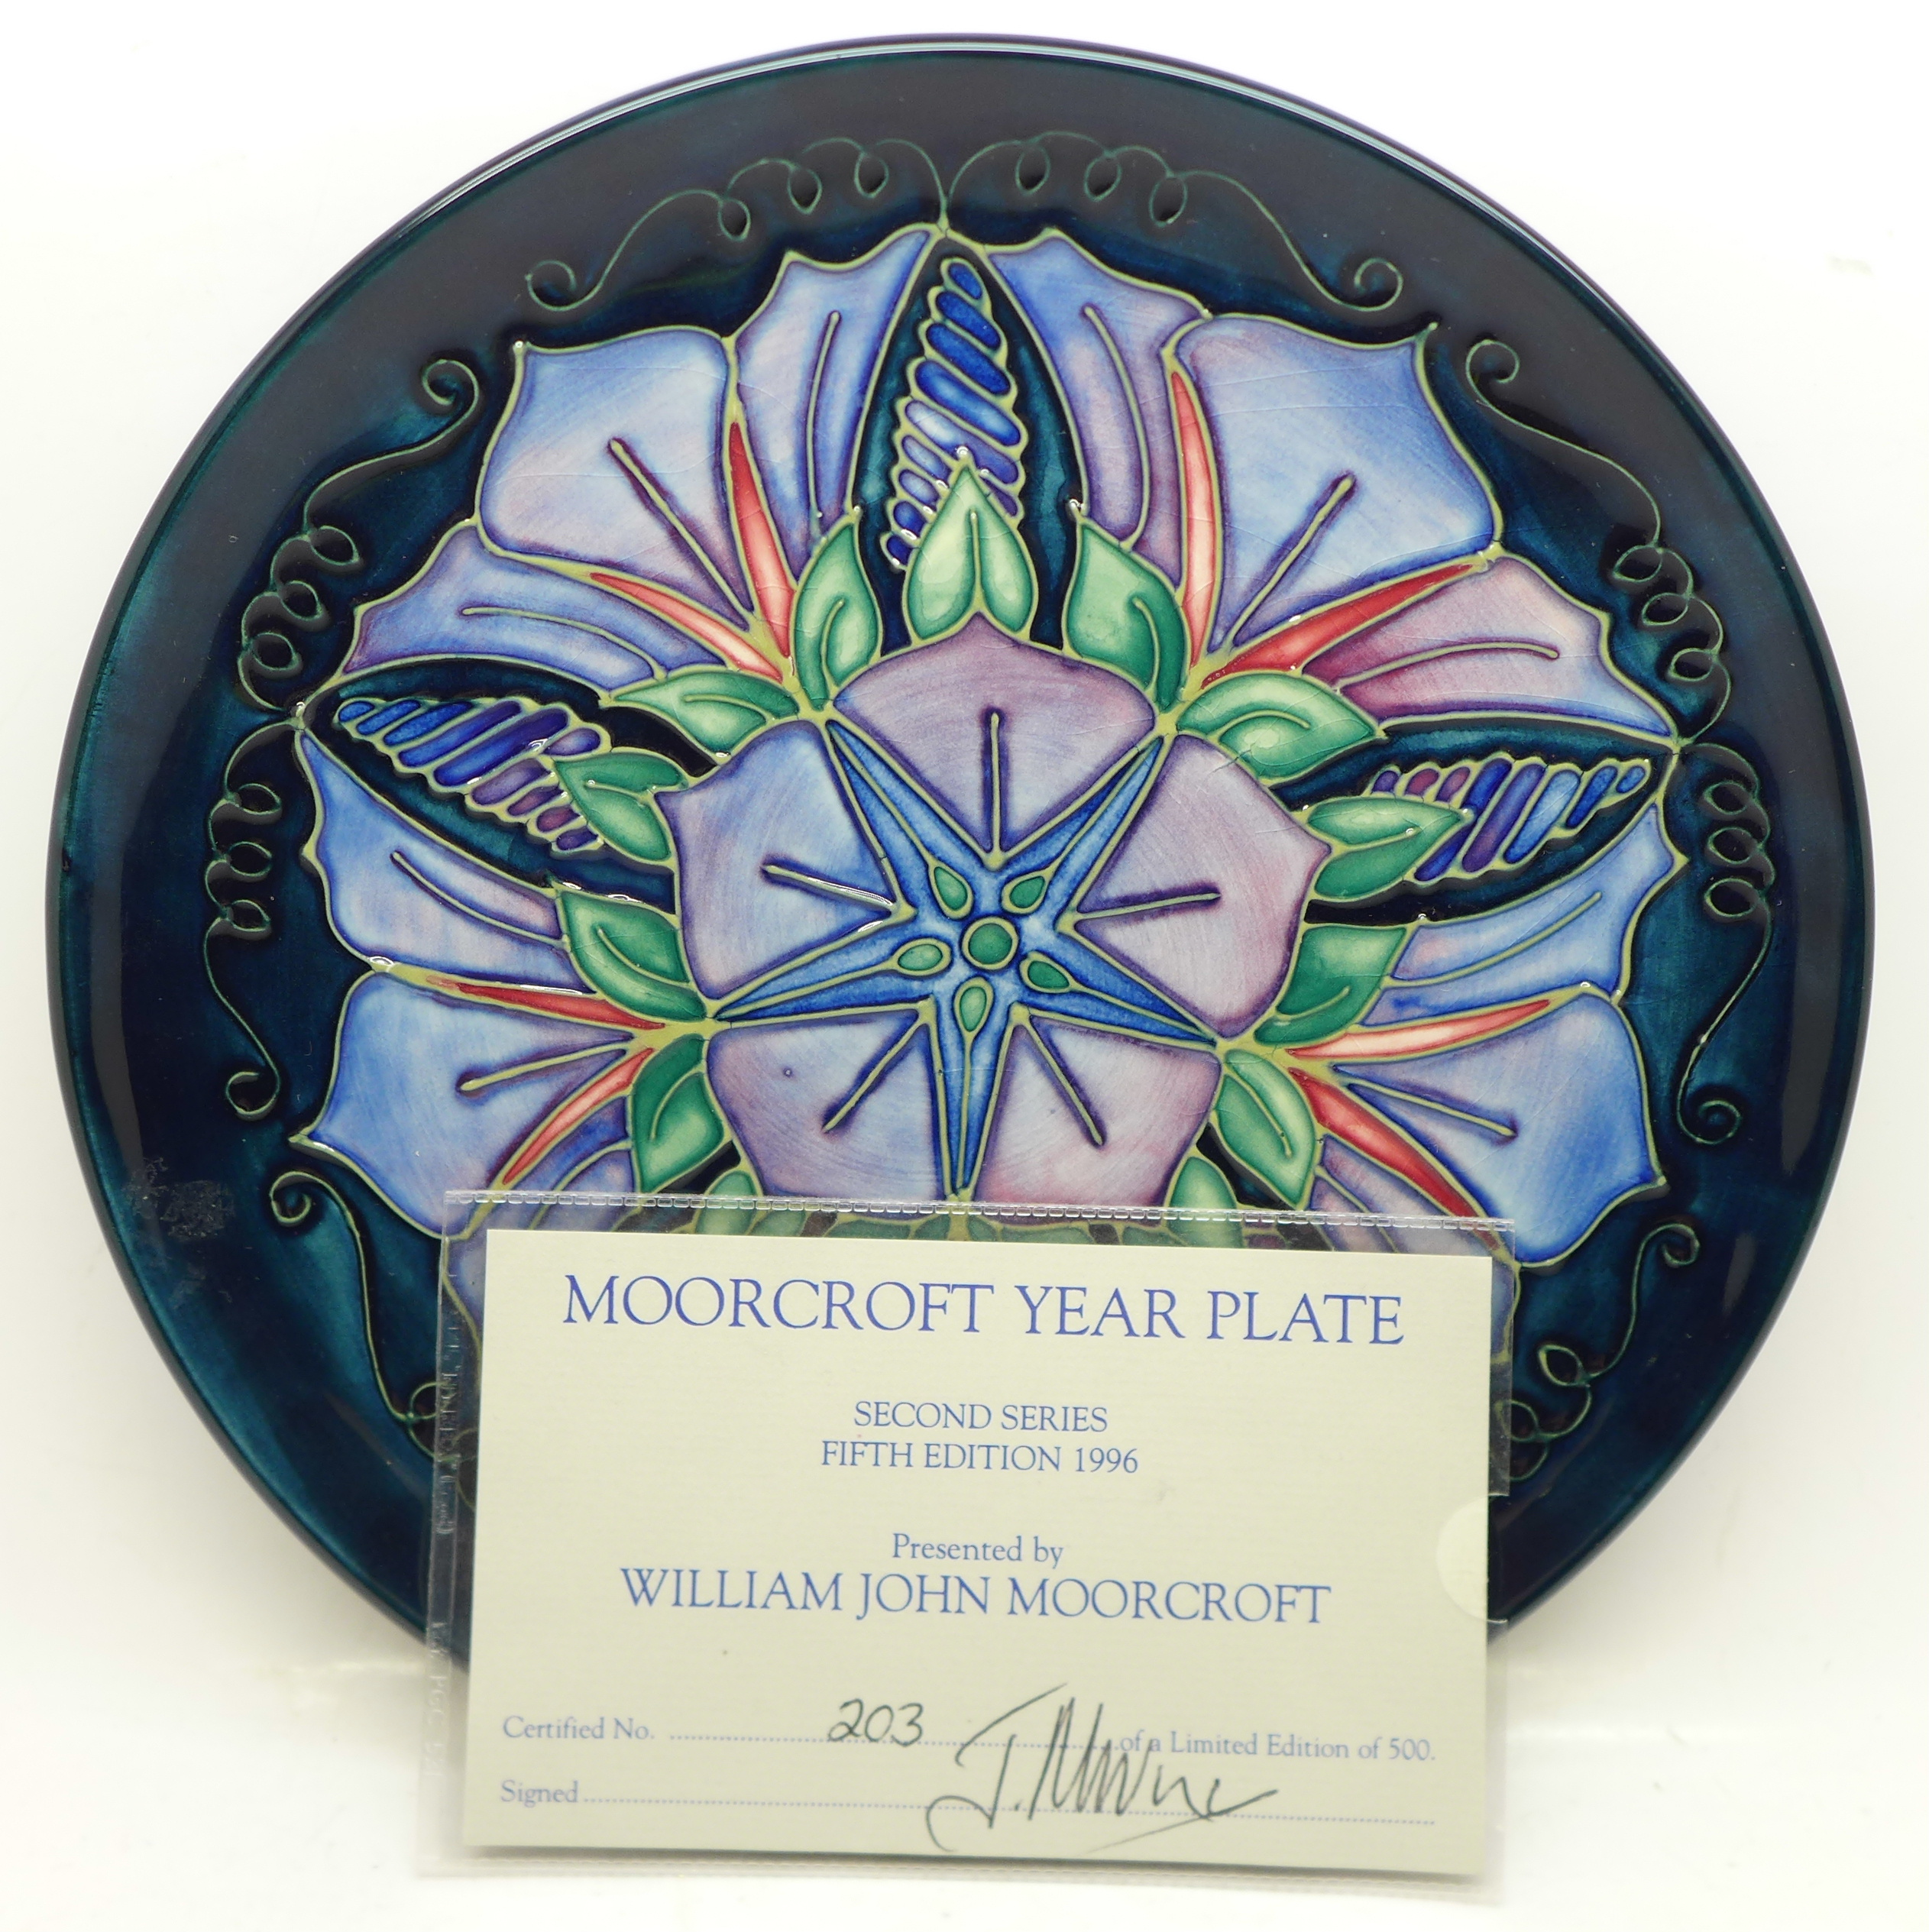 A Moorcroft Year Plate, Second Series Fifth Edition 1996, 203/500, with signed certificate, no - Image 3 of 7